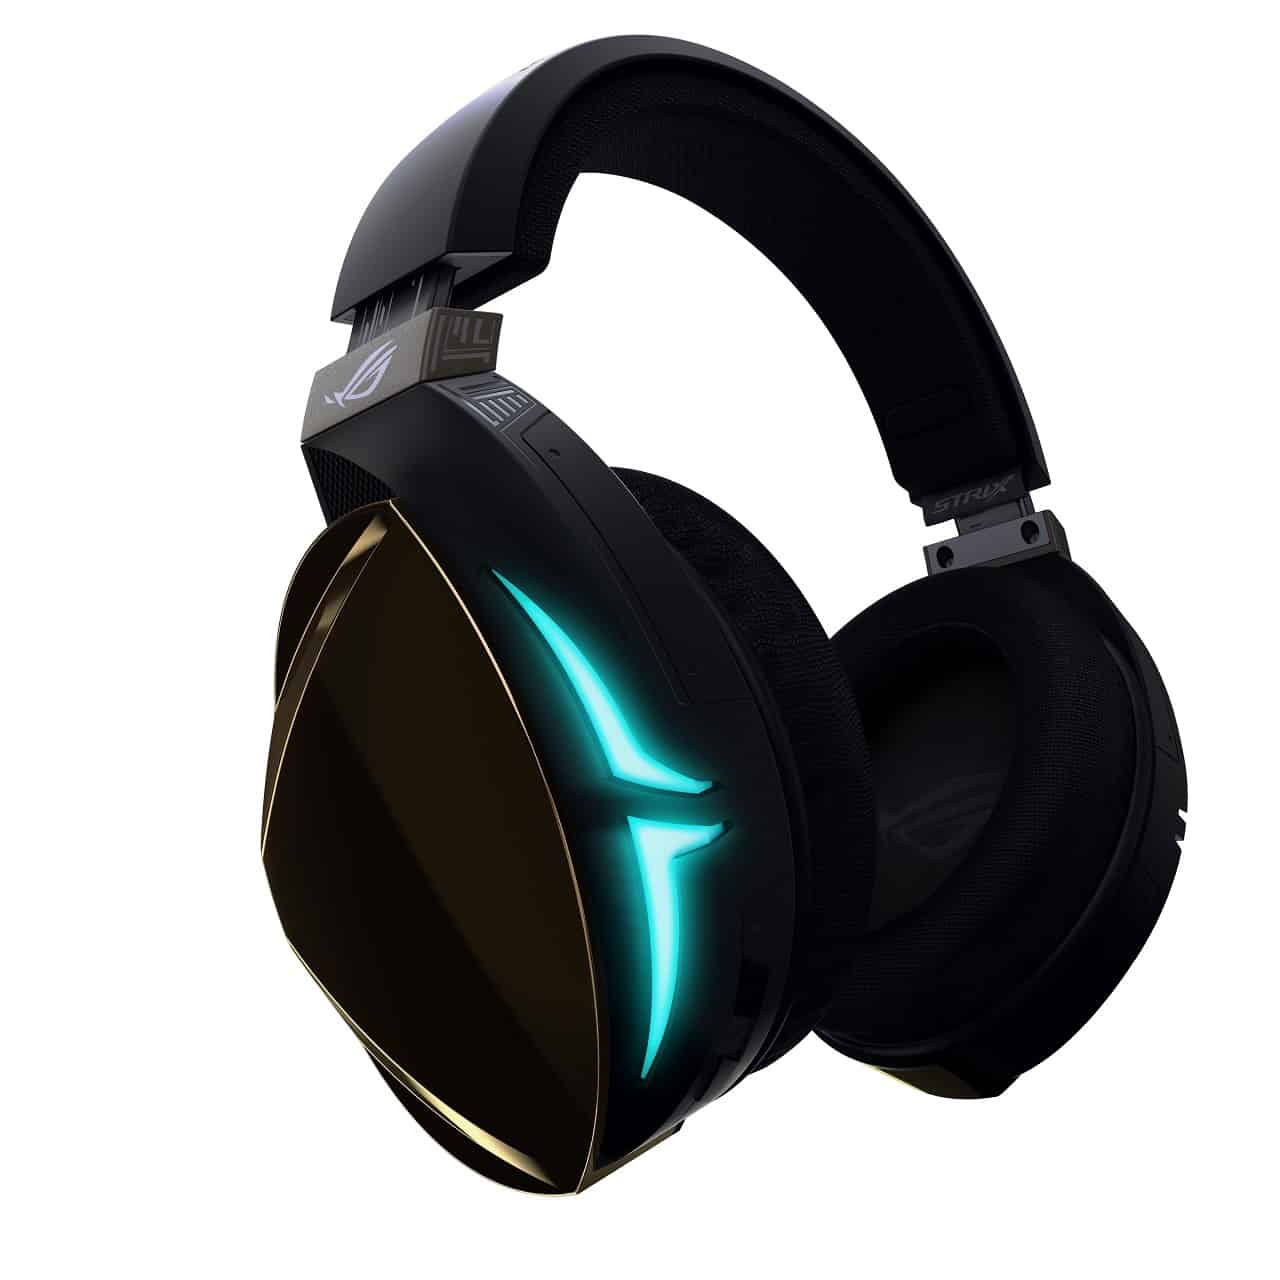 ROG Strix Fusion 500 RGB 7.1 gaming headset 1 - ASUS ROG annuncia le nuove cuffie gaming Strix Fusion 500